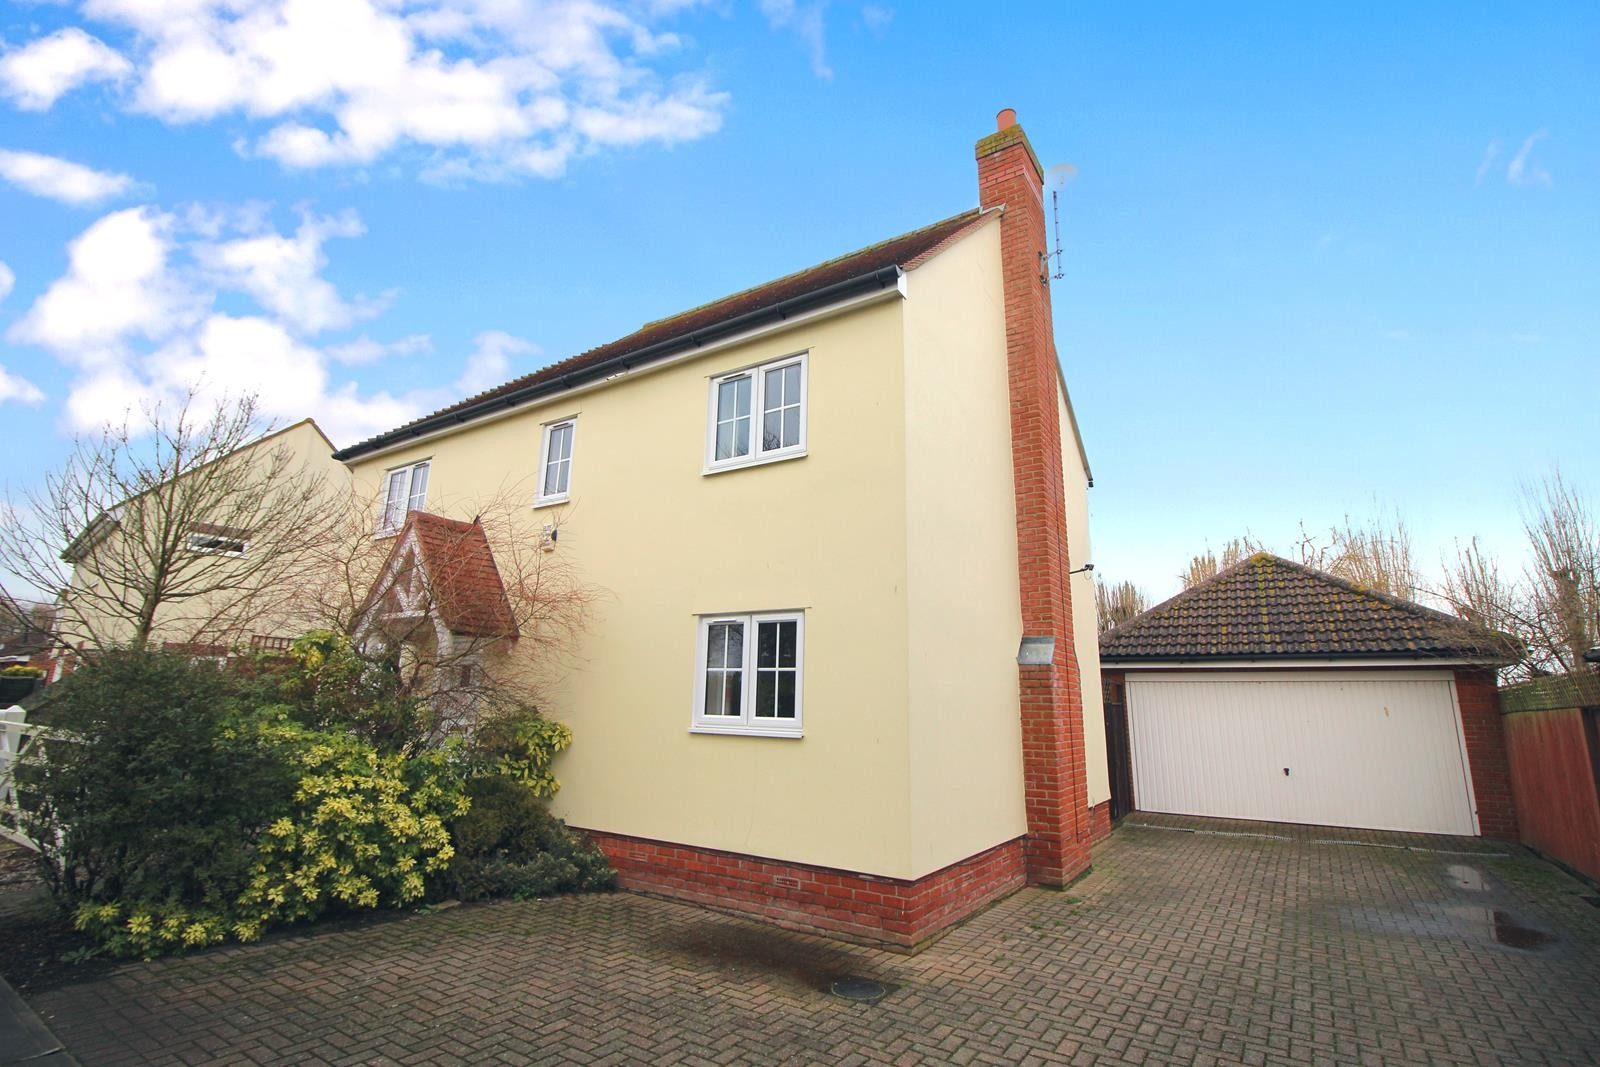 Pyefleet View, Langenhoe, Colchester, Essex, CO5